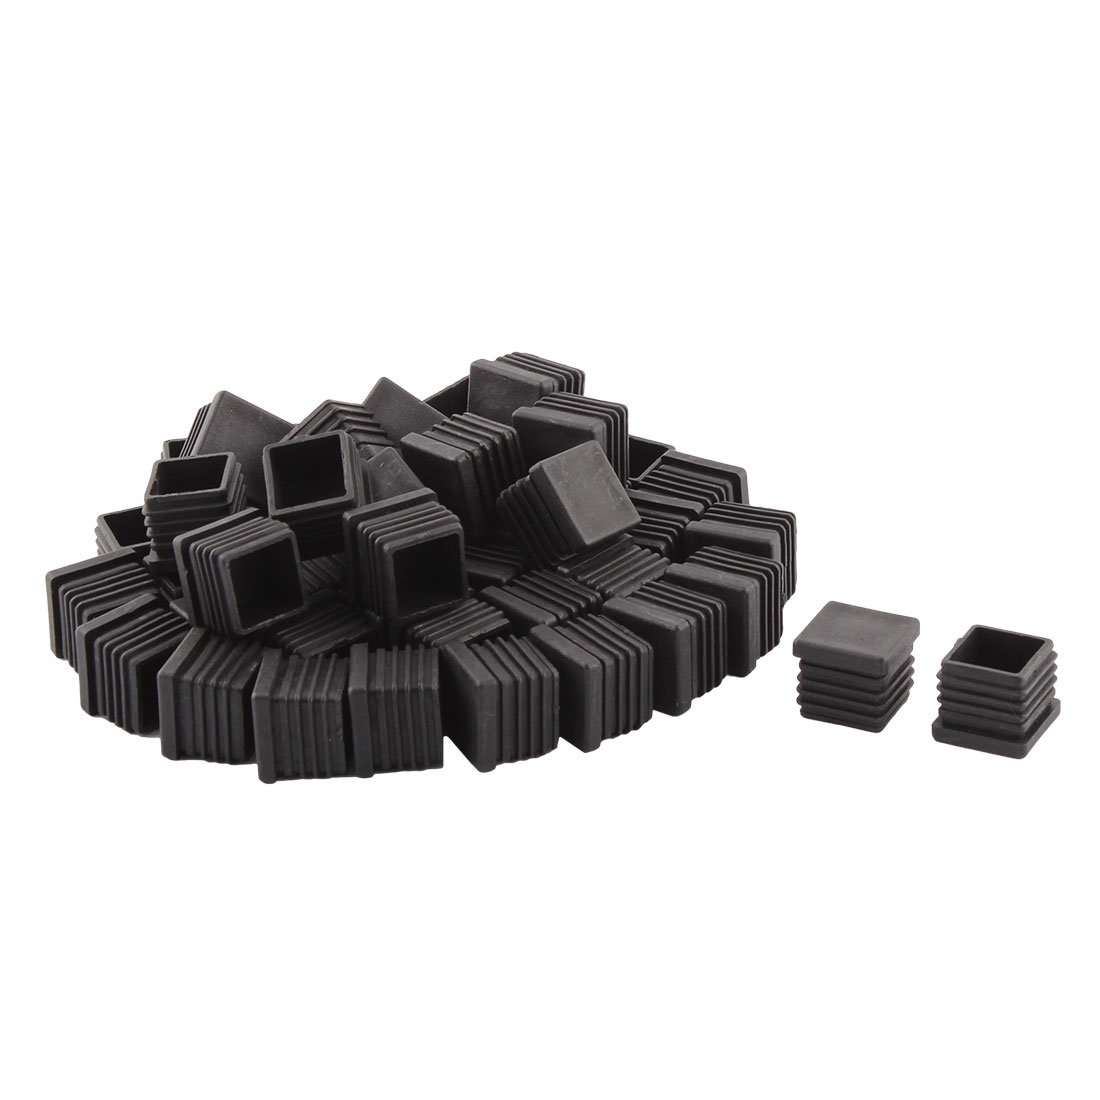 Home Office Plastic Square Shaped Table Chair Leg Tube Pipe Insert Black 22 x 22mm 50 PCS